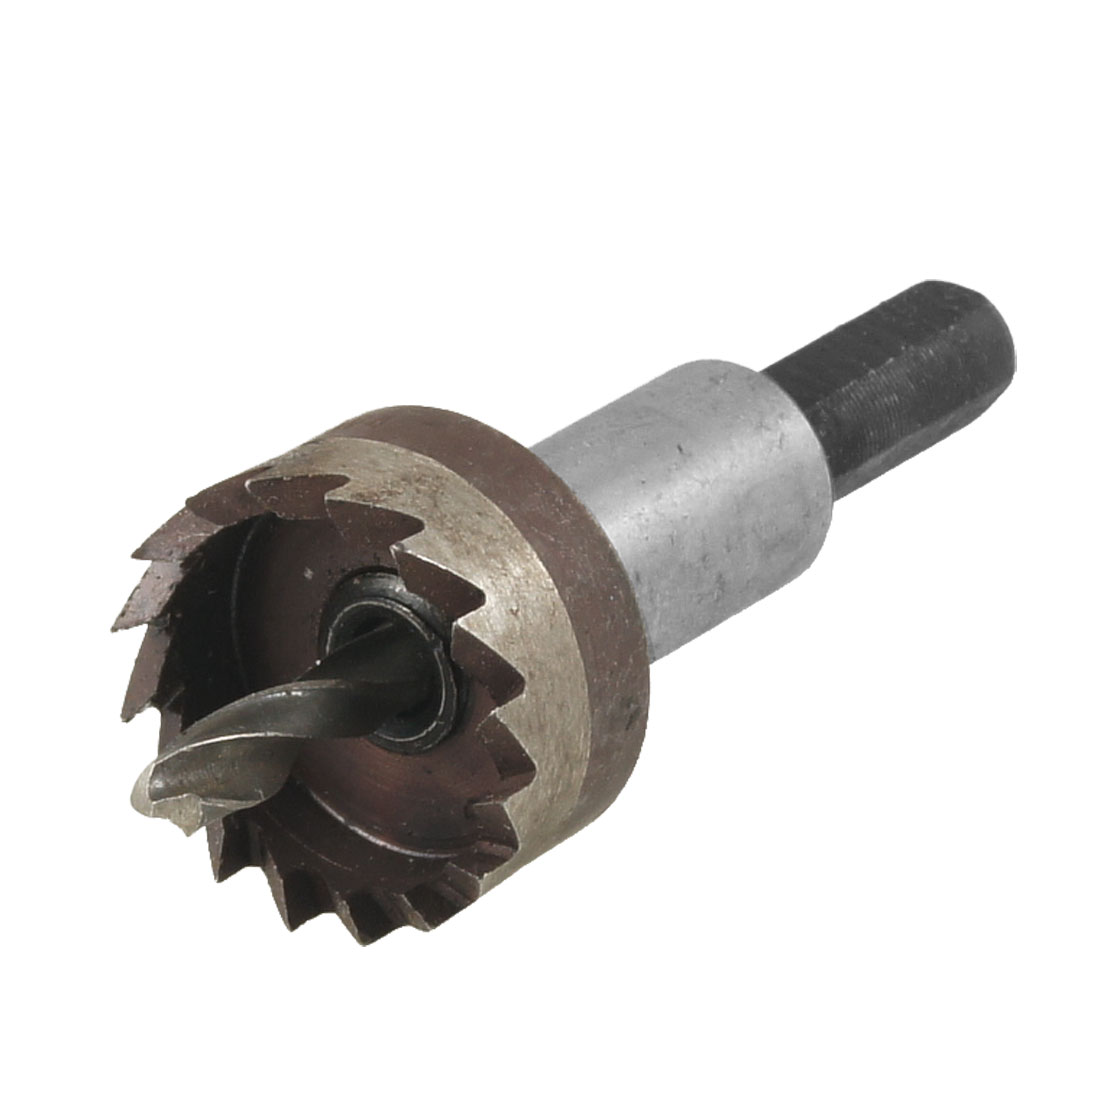 HSS 24mm Dia Iron Cutting 4mm Metal Twist Drill Bit Hole Saw Tool